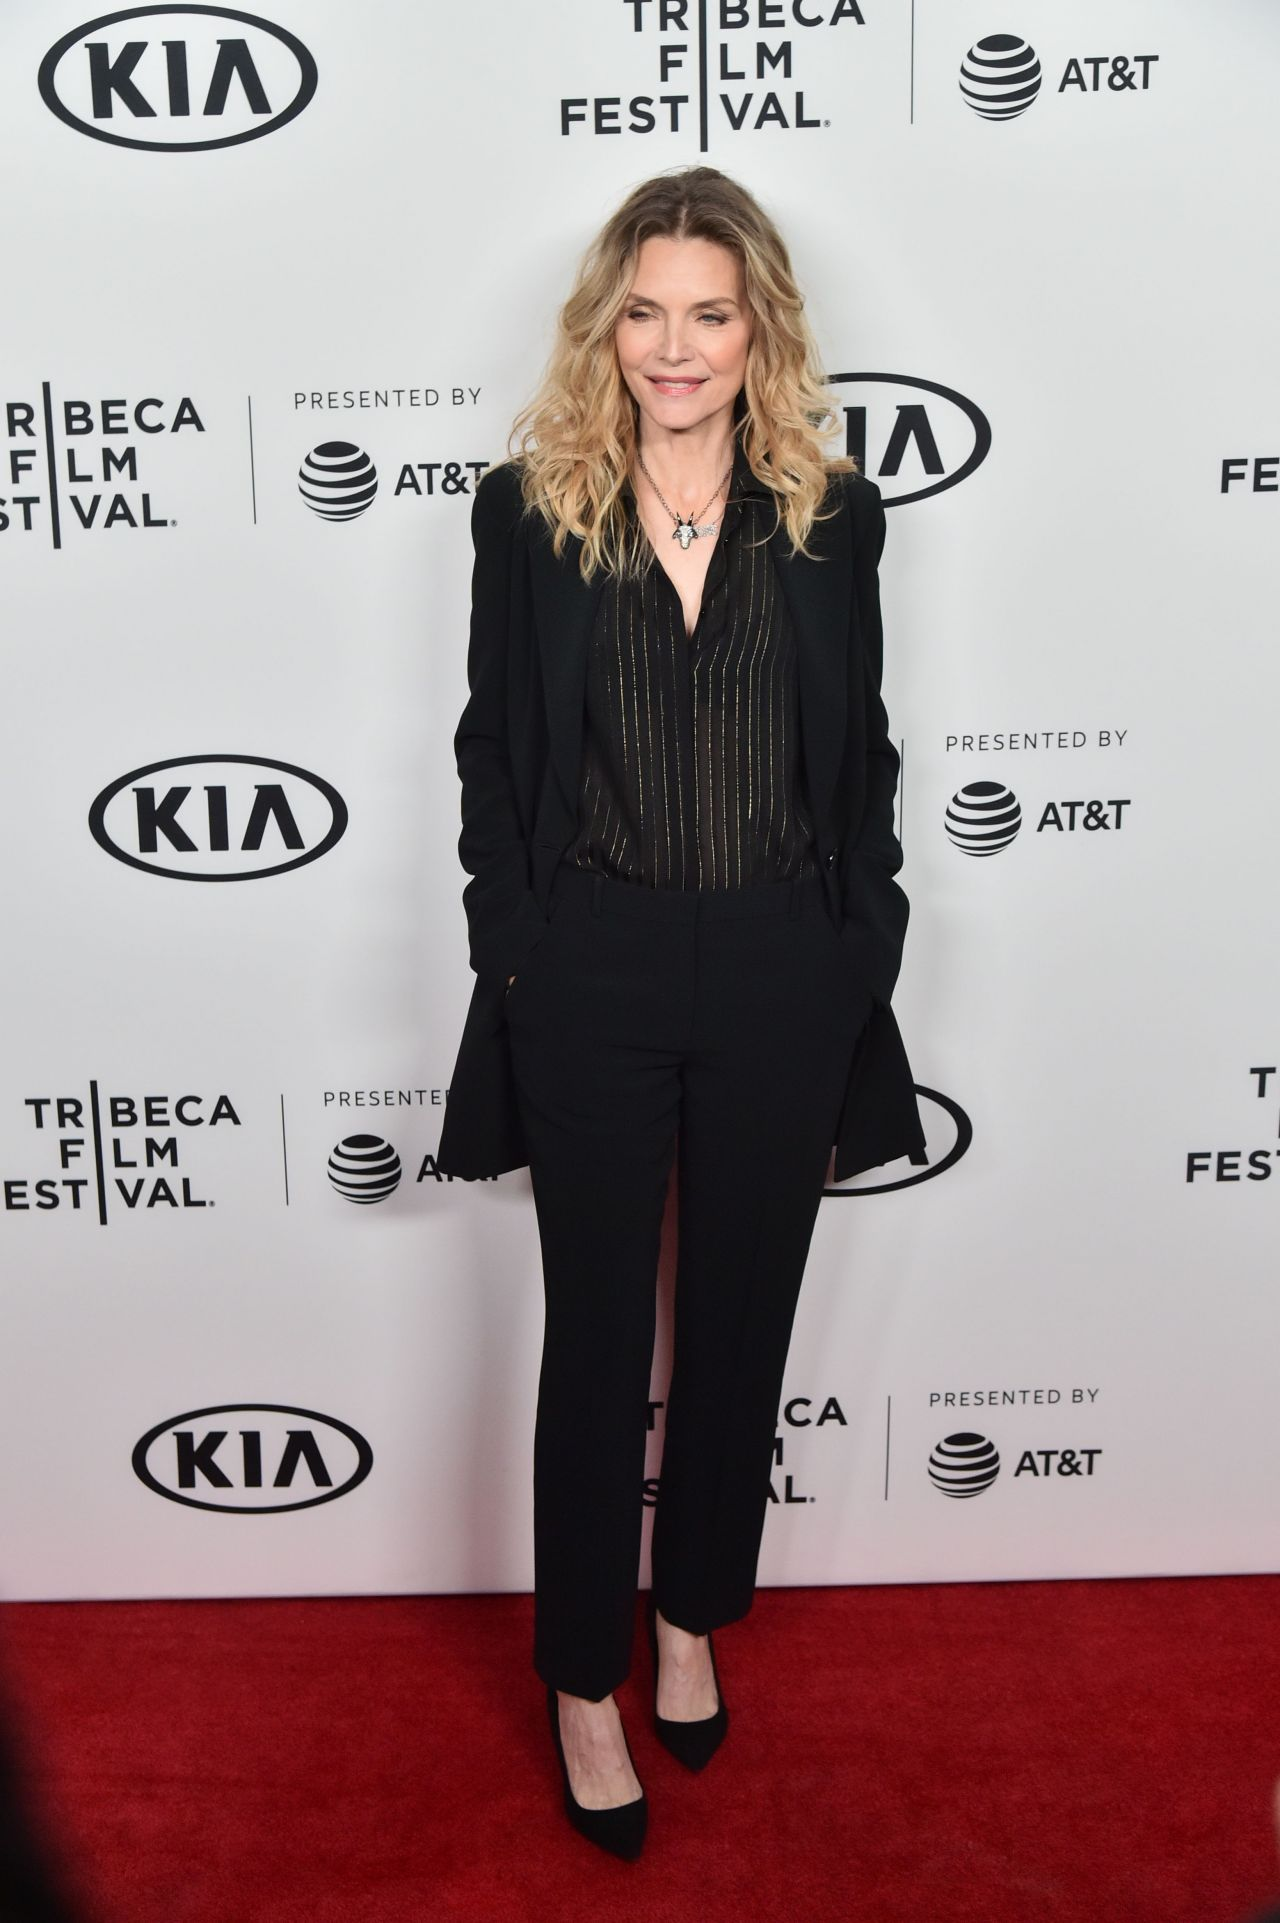 https://celebmafia.com/wp-content/uploads/2018/04/michelle-pfeiffer-scarface-35th-reunion-red-carpet-at-tribeca-film-festival-in-ny-6.jpg